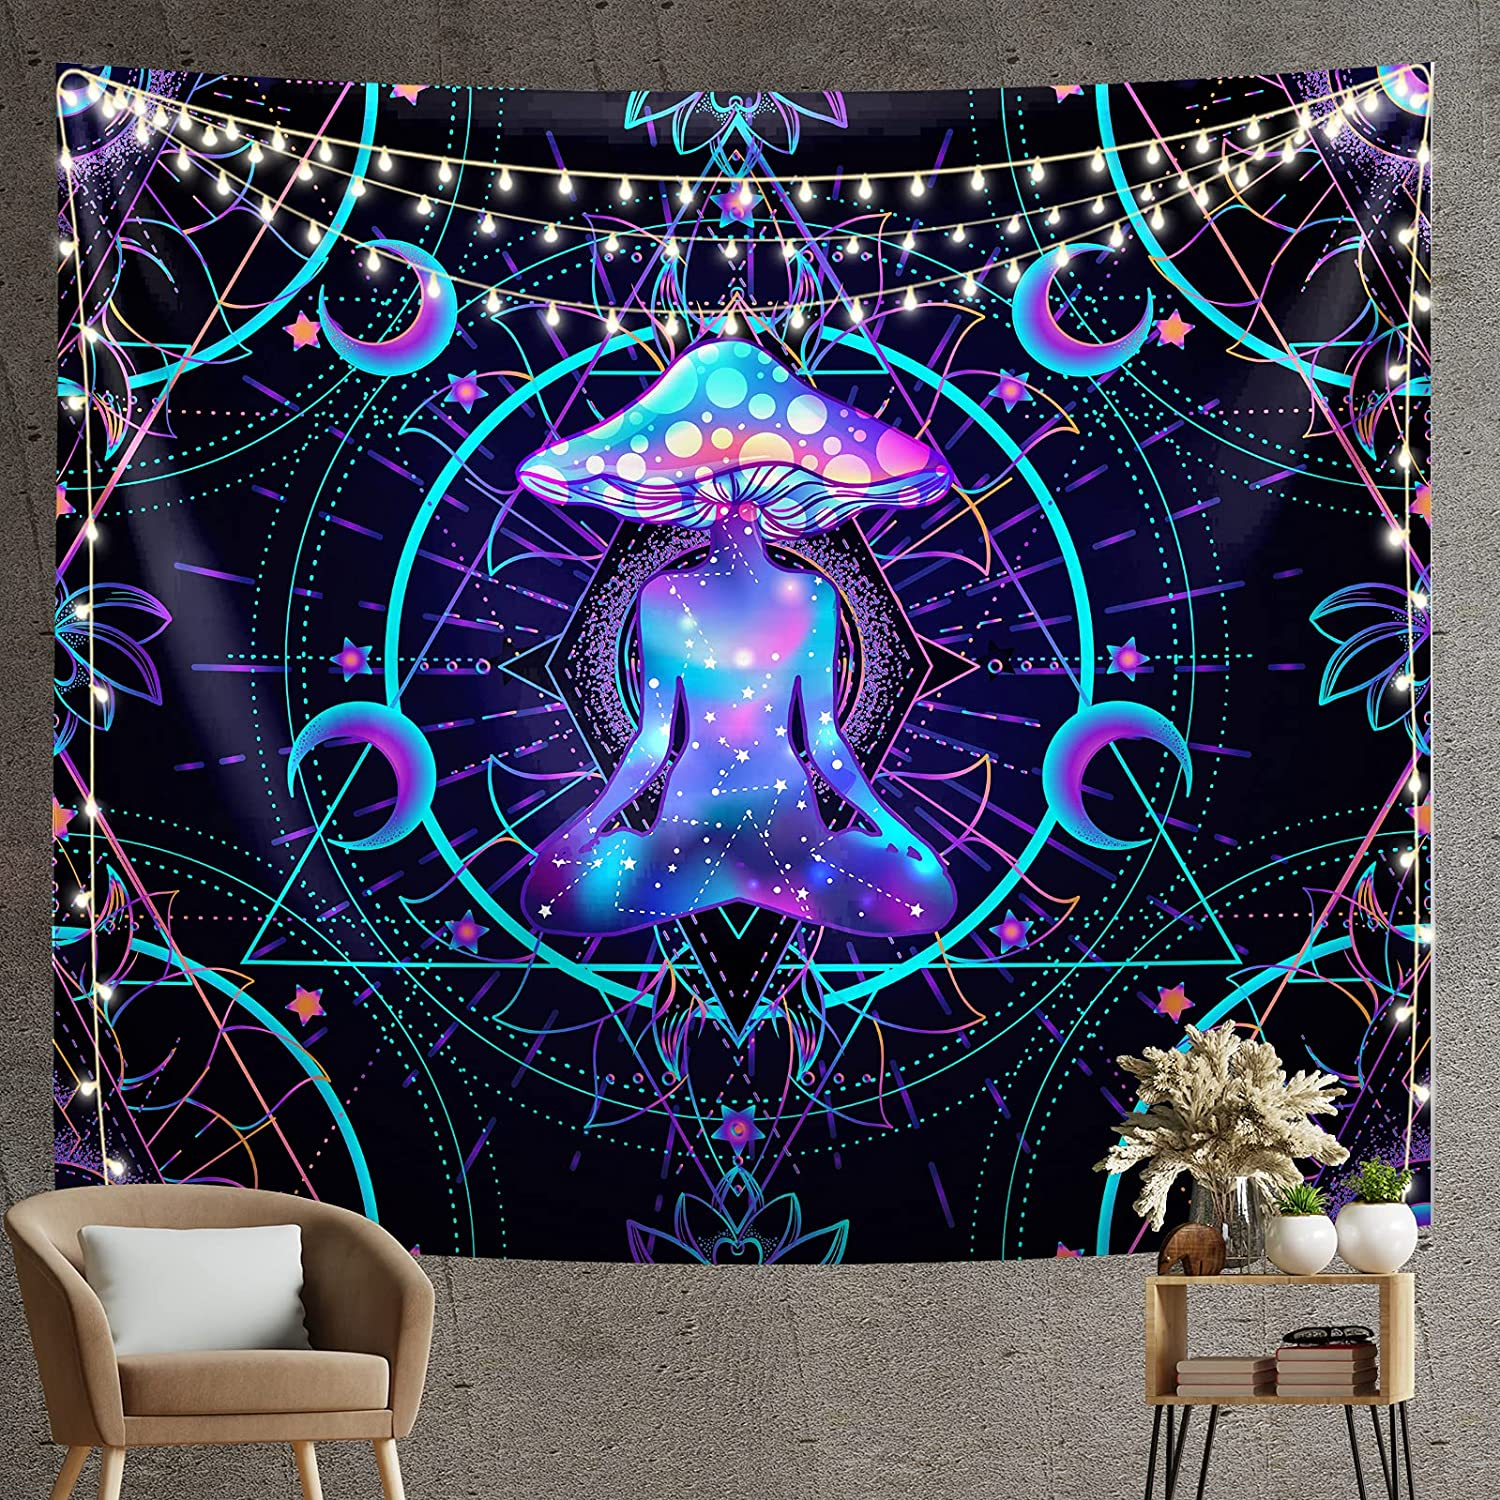 Max 61% OFF Trippy Tapestry Psychedelic Max 72% OFF Wall Bl Hanging Mushroom Chakra